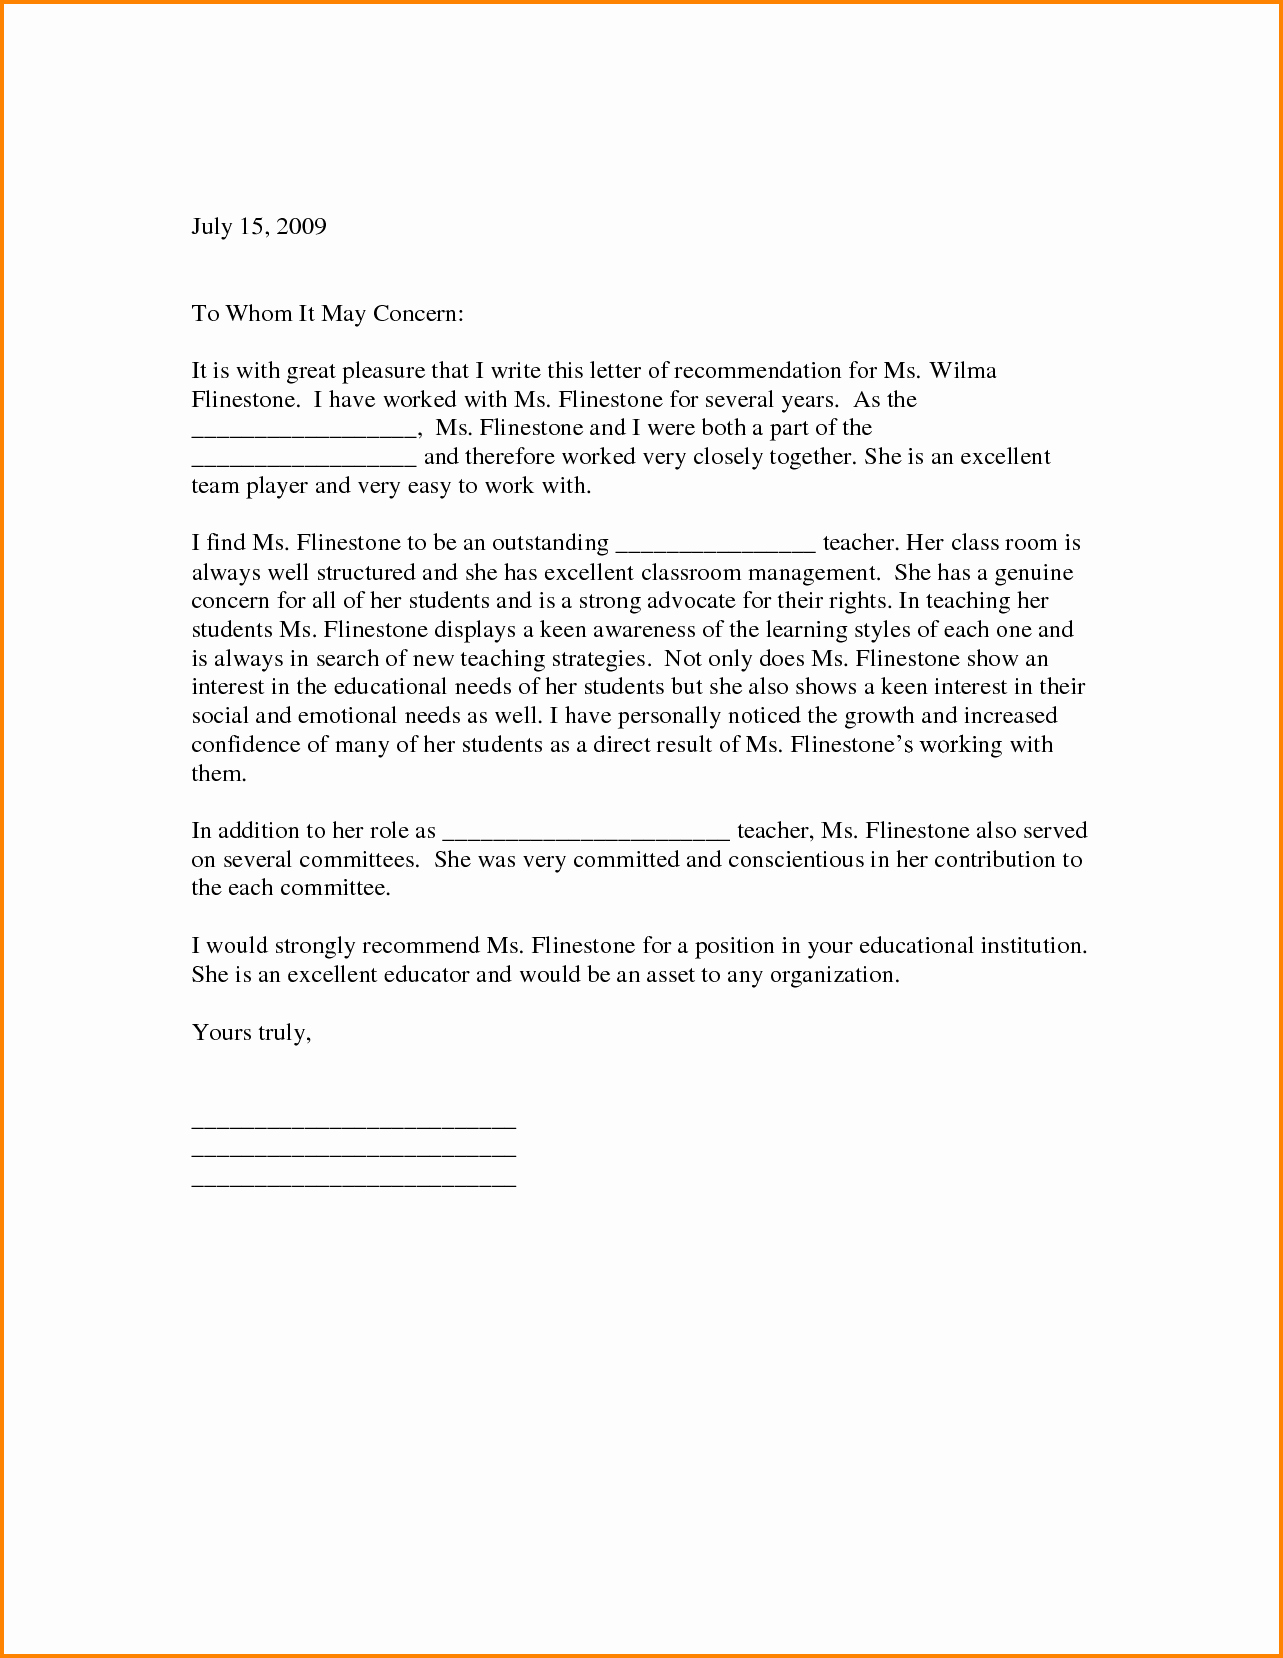 Scholarship Recommendation Letter From Teacher Beautiful 5 Letter Of Re Mendation for Scholarship From Teacher